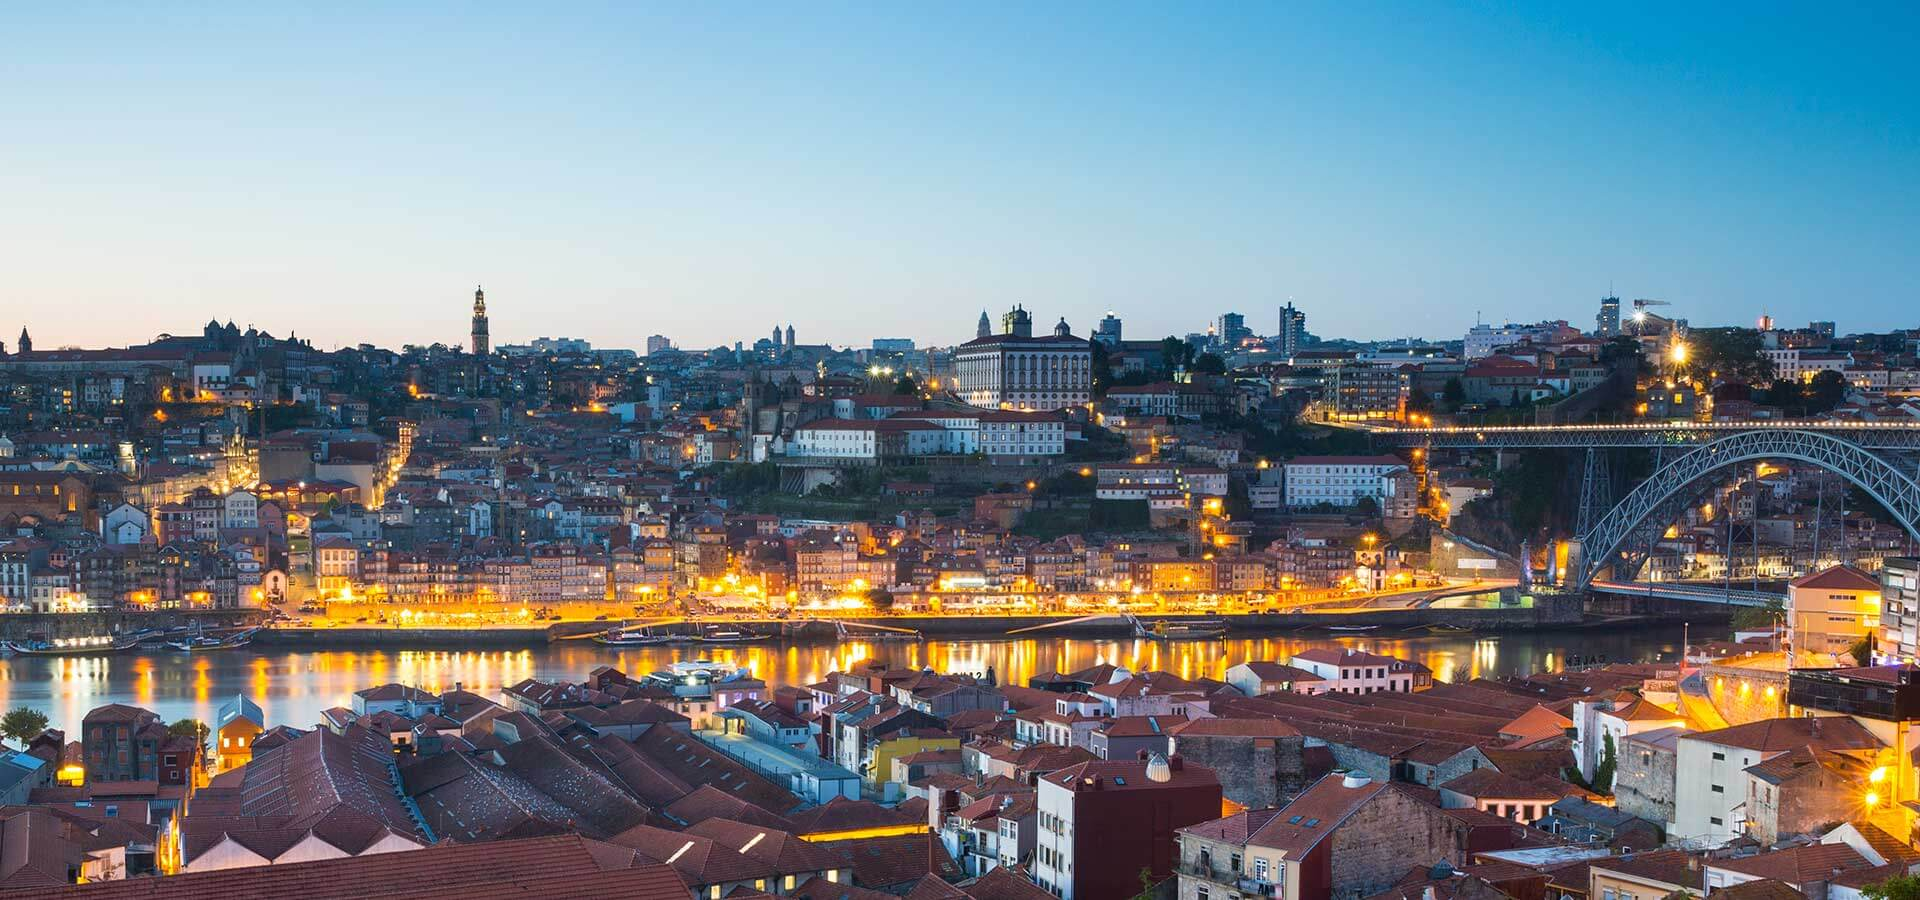 Luxury Hotel in Porto - The Yeatman